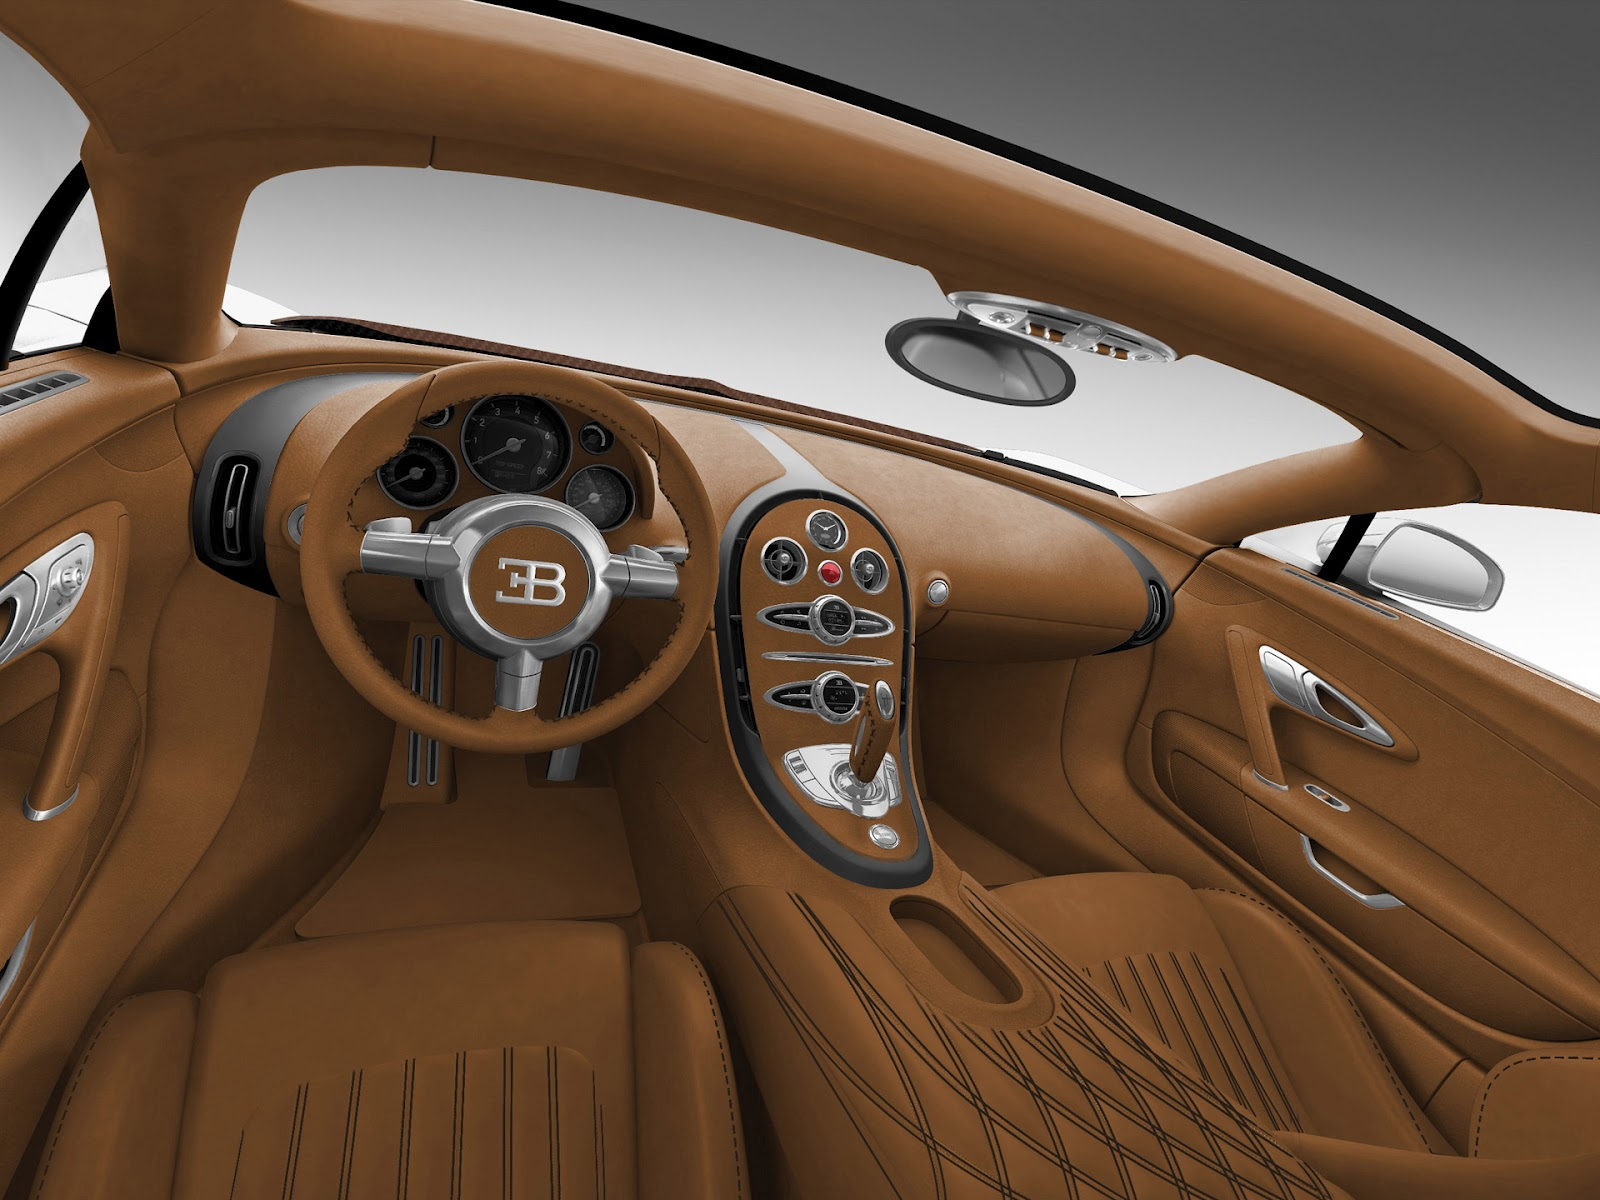 2012 bugatti veyron 16 4 grand sport brown carbon fiber. Black Bedroom Furniture Sets. Home Design Ideas